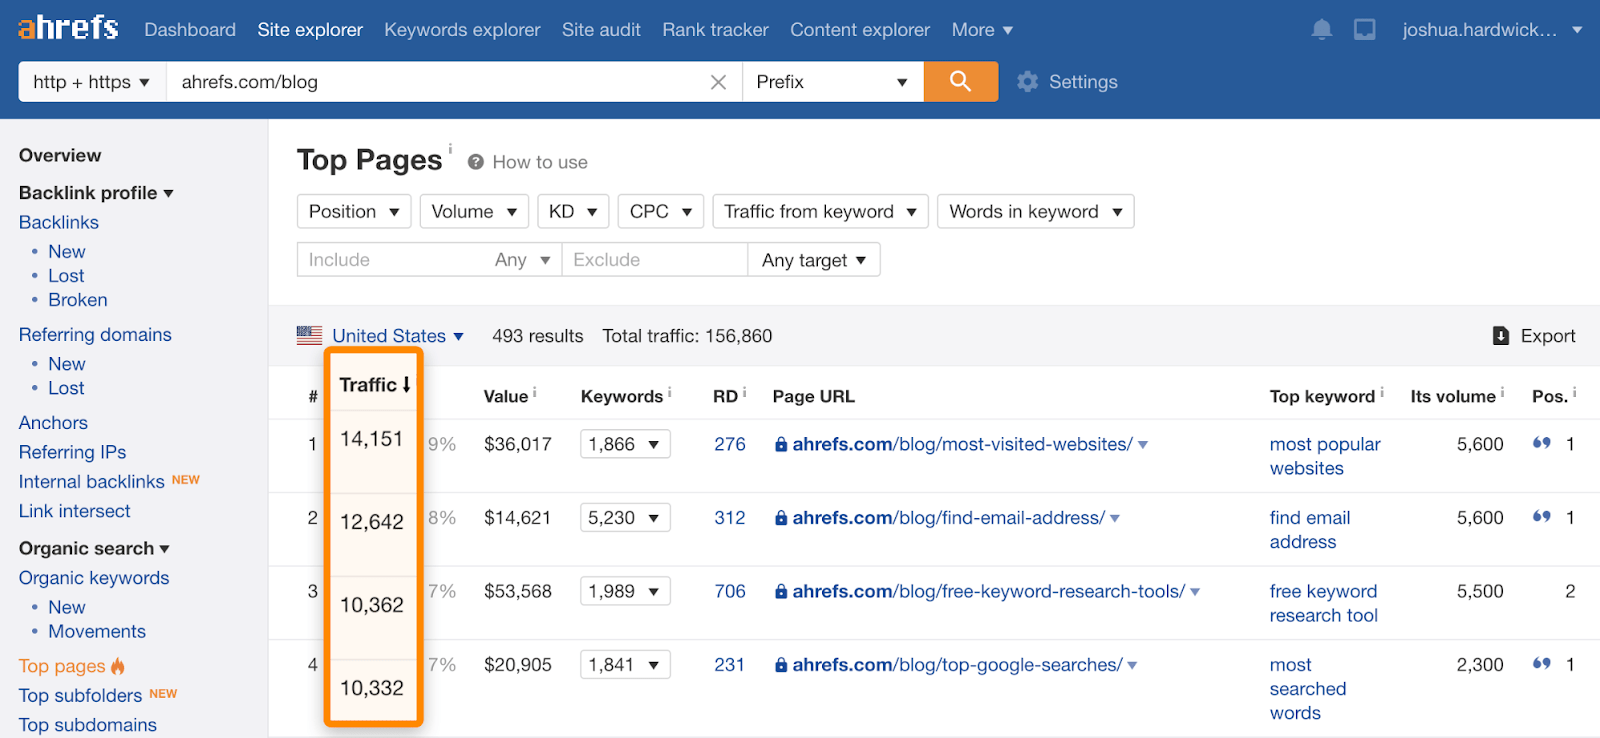 4 ahrefs blog top pages